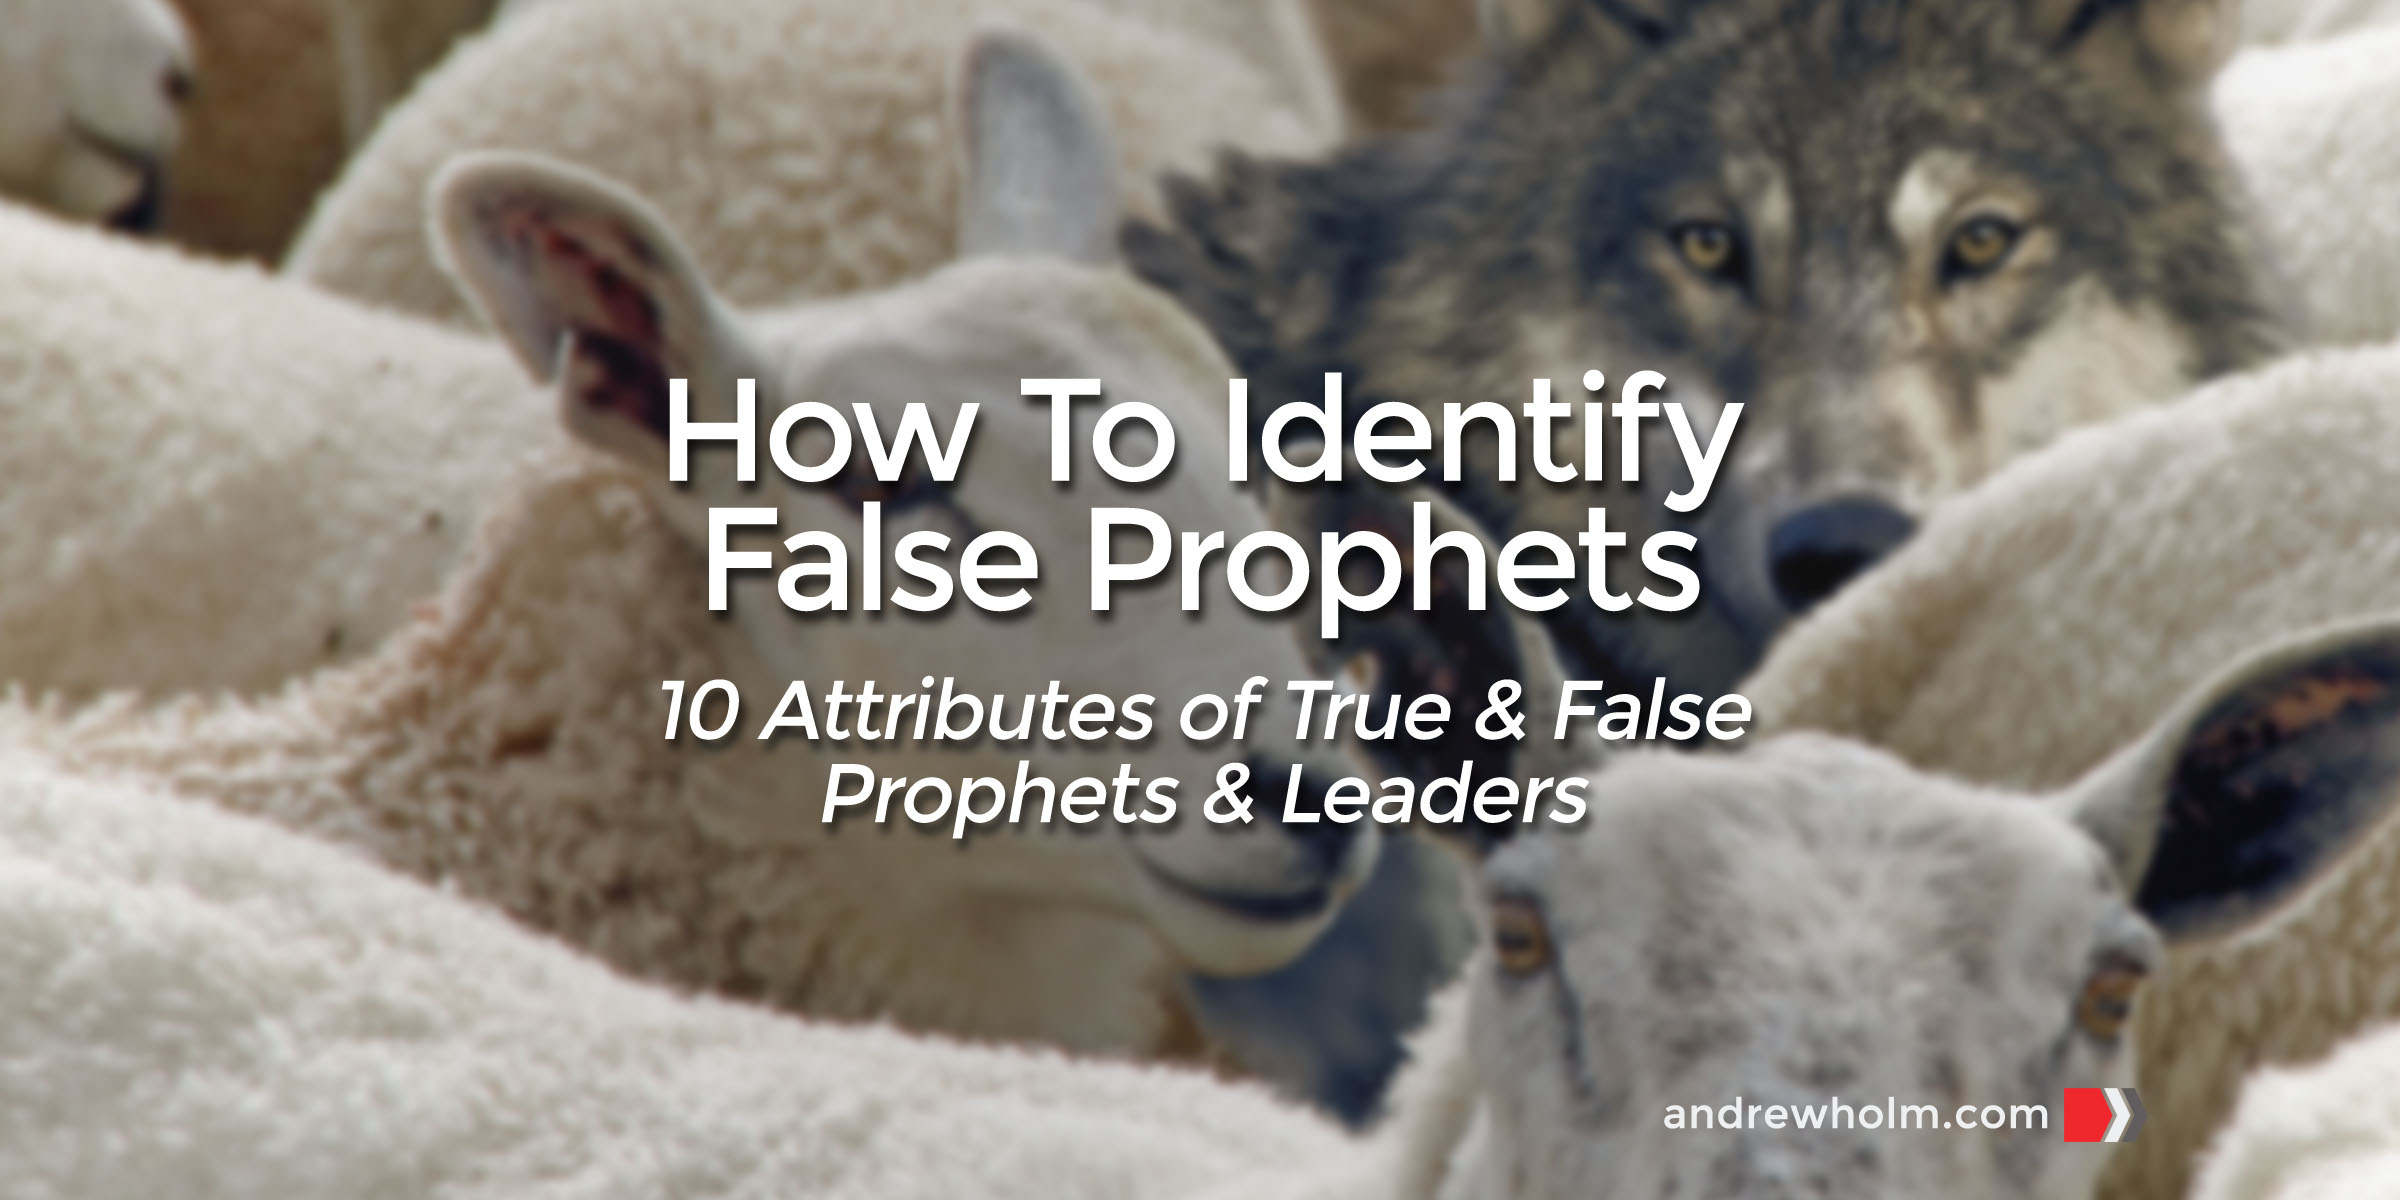 How to Identify False Prophets